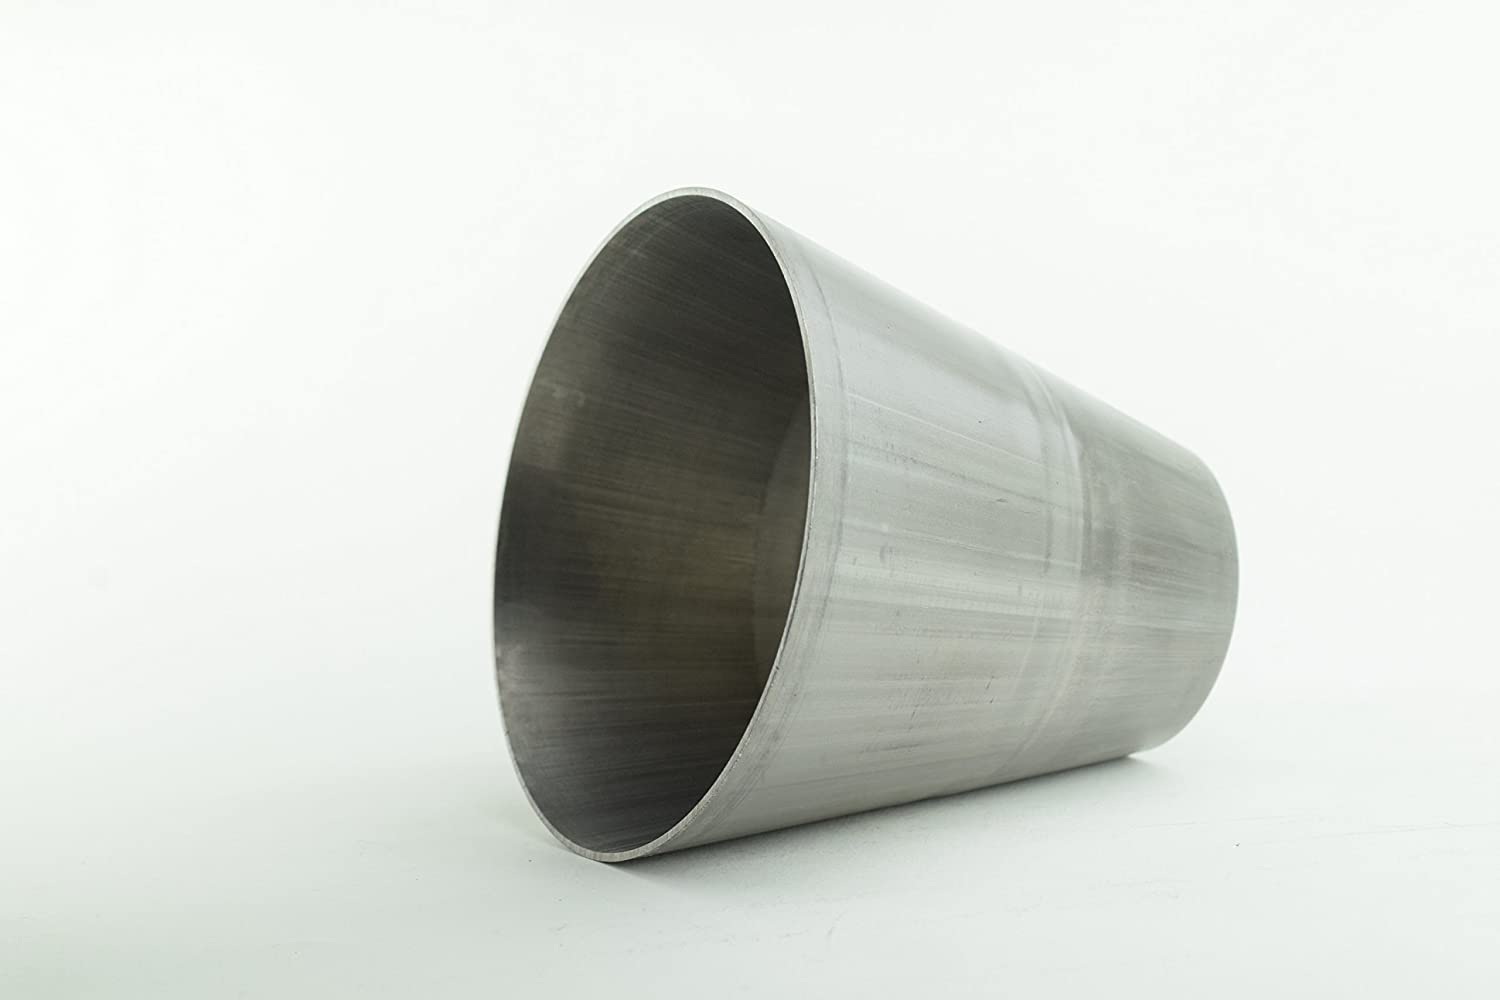 1 1//2 to 3 304 Stainless Steel Exhaust Transition Can Be Cut to Fit 2 to 3 B2 Fabrication 1.5